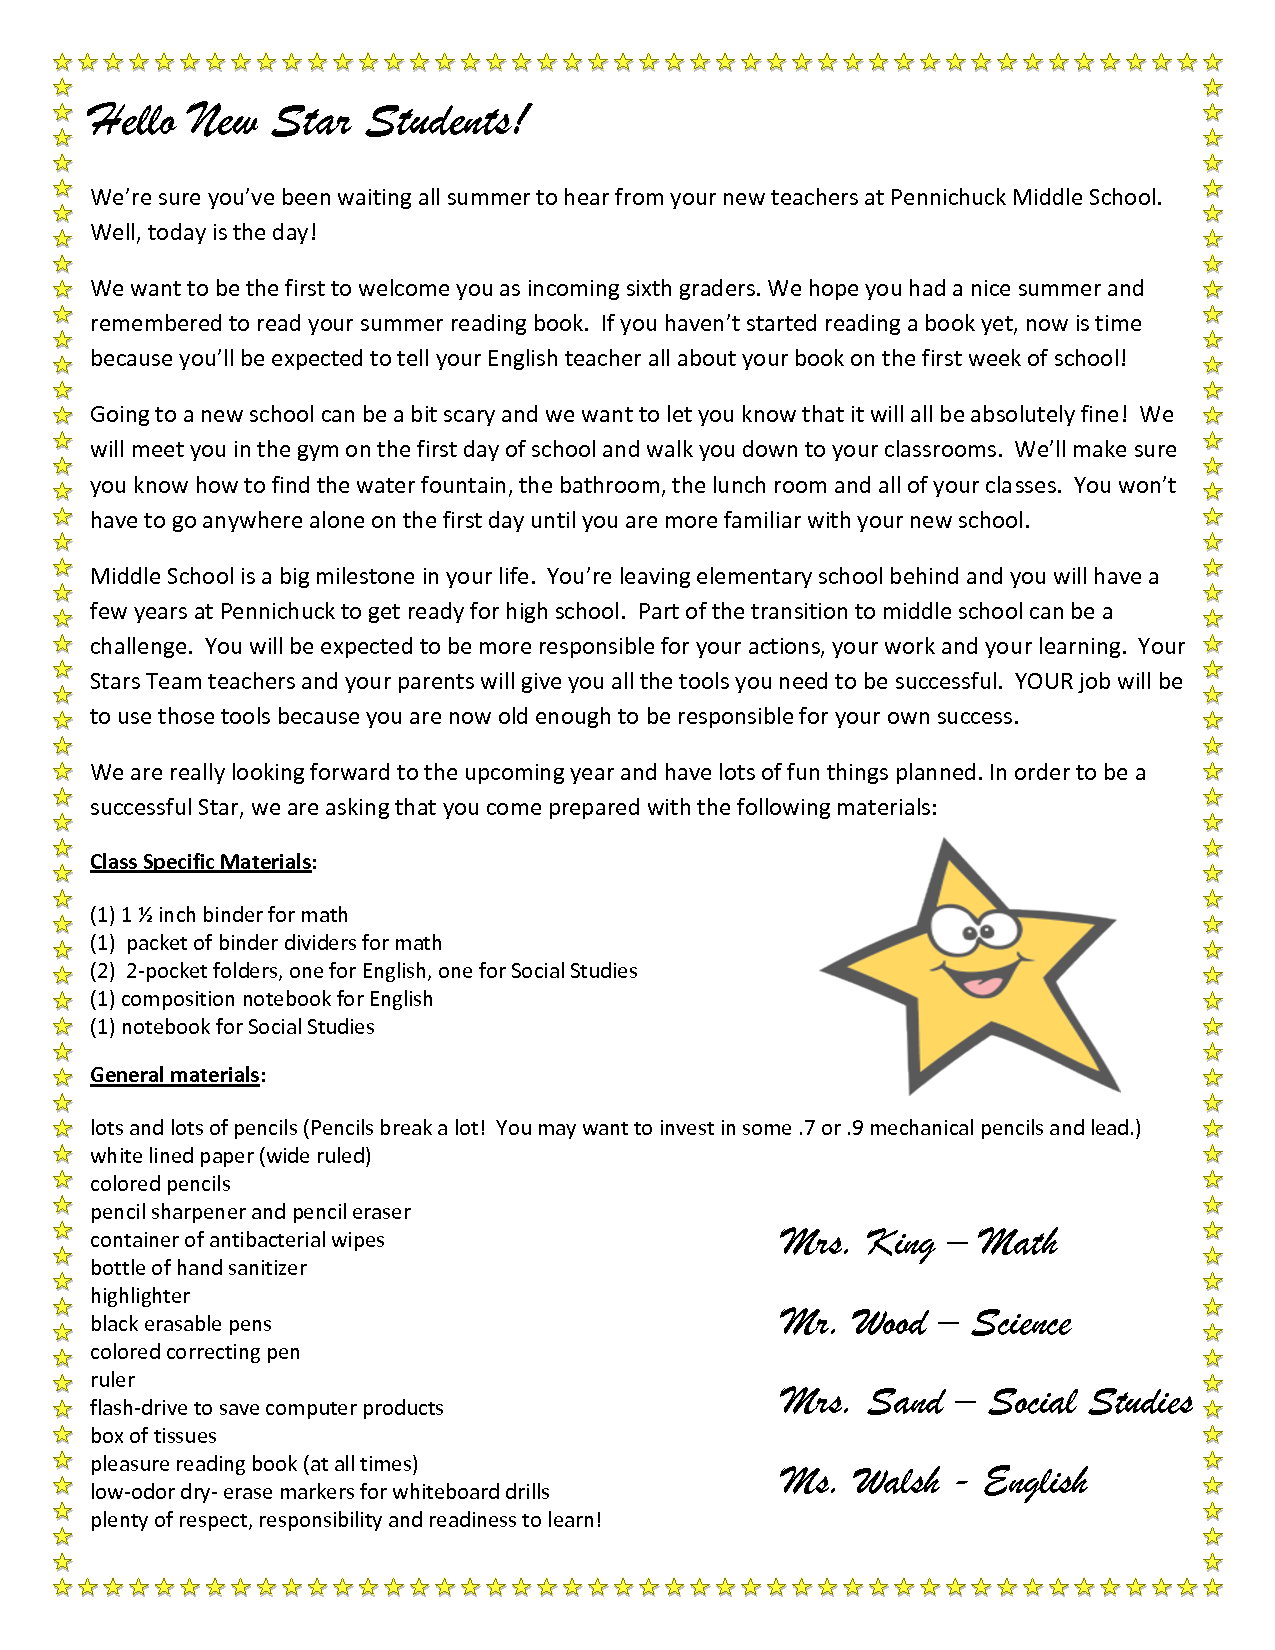 Teacher Welcome Letter To Students  Stars Team Welcome Letter